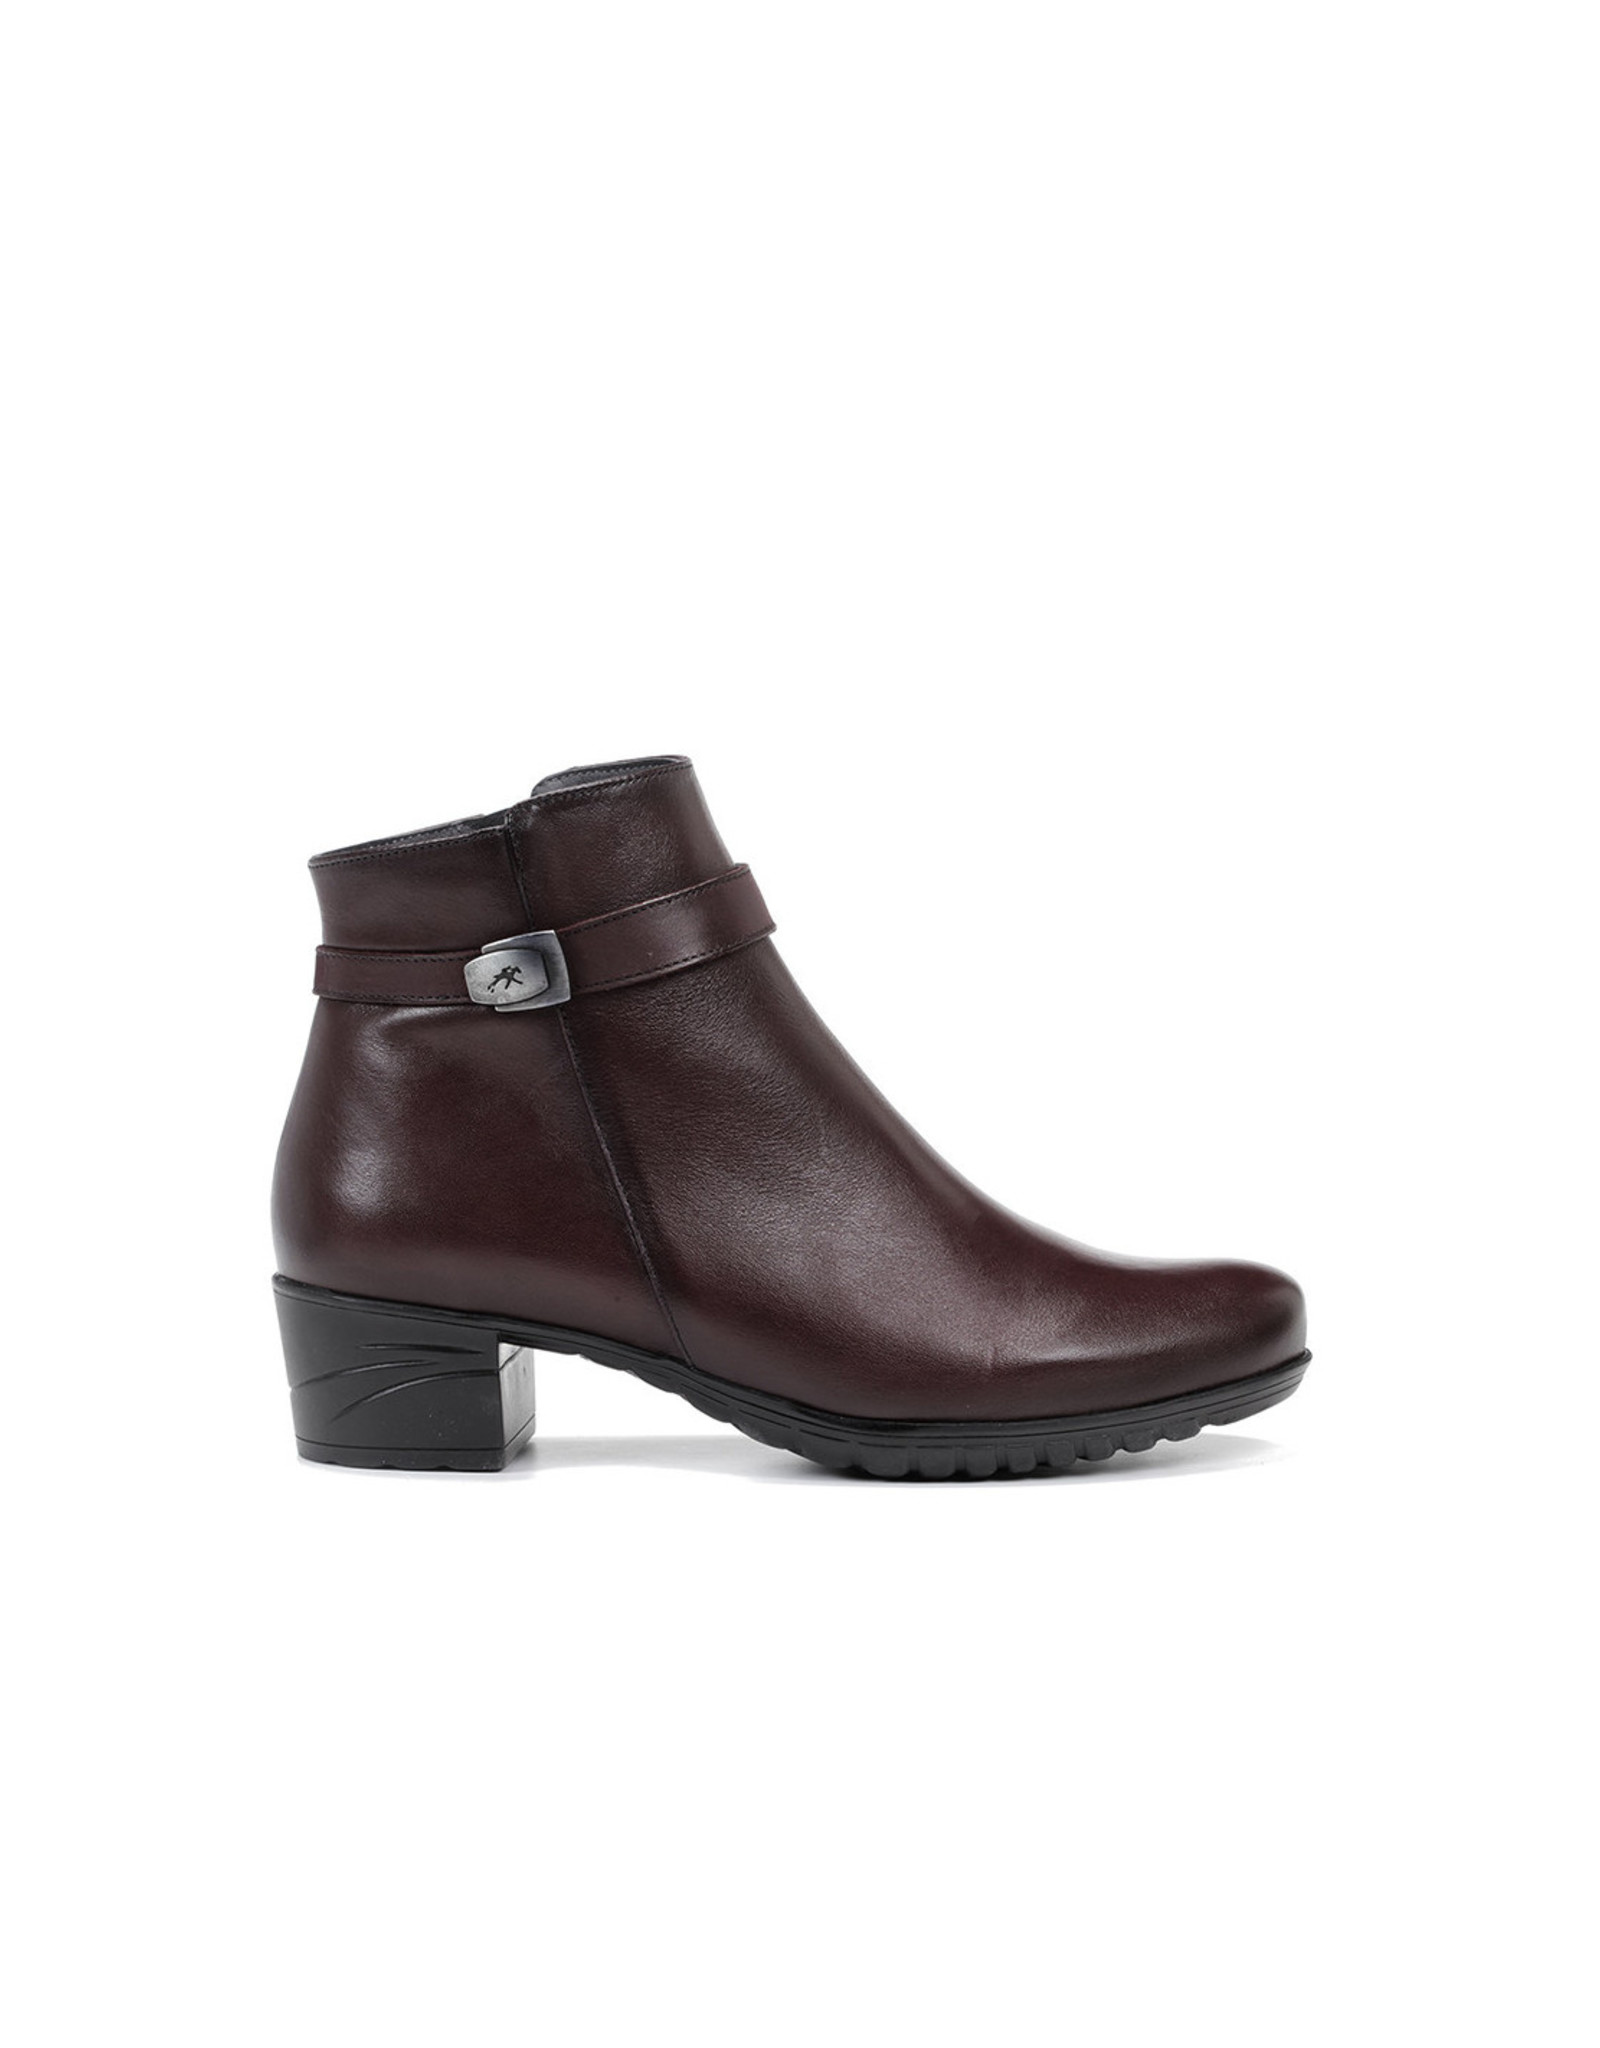 fluchos F0937 bordo